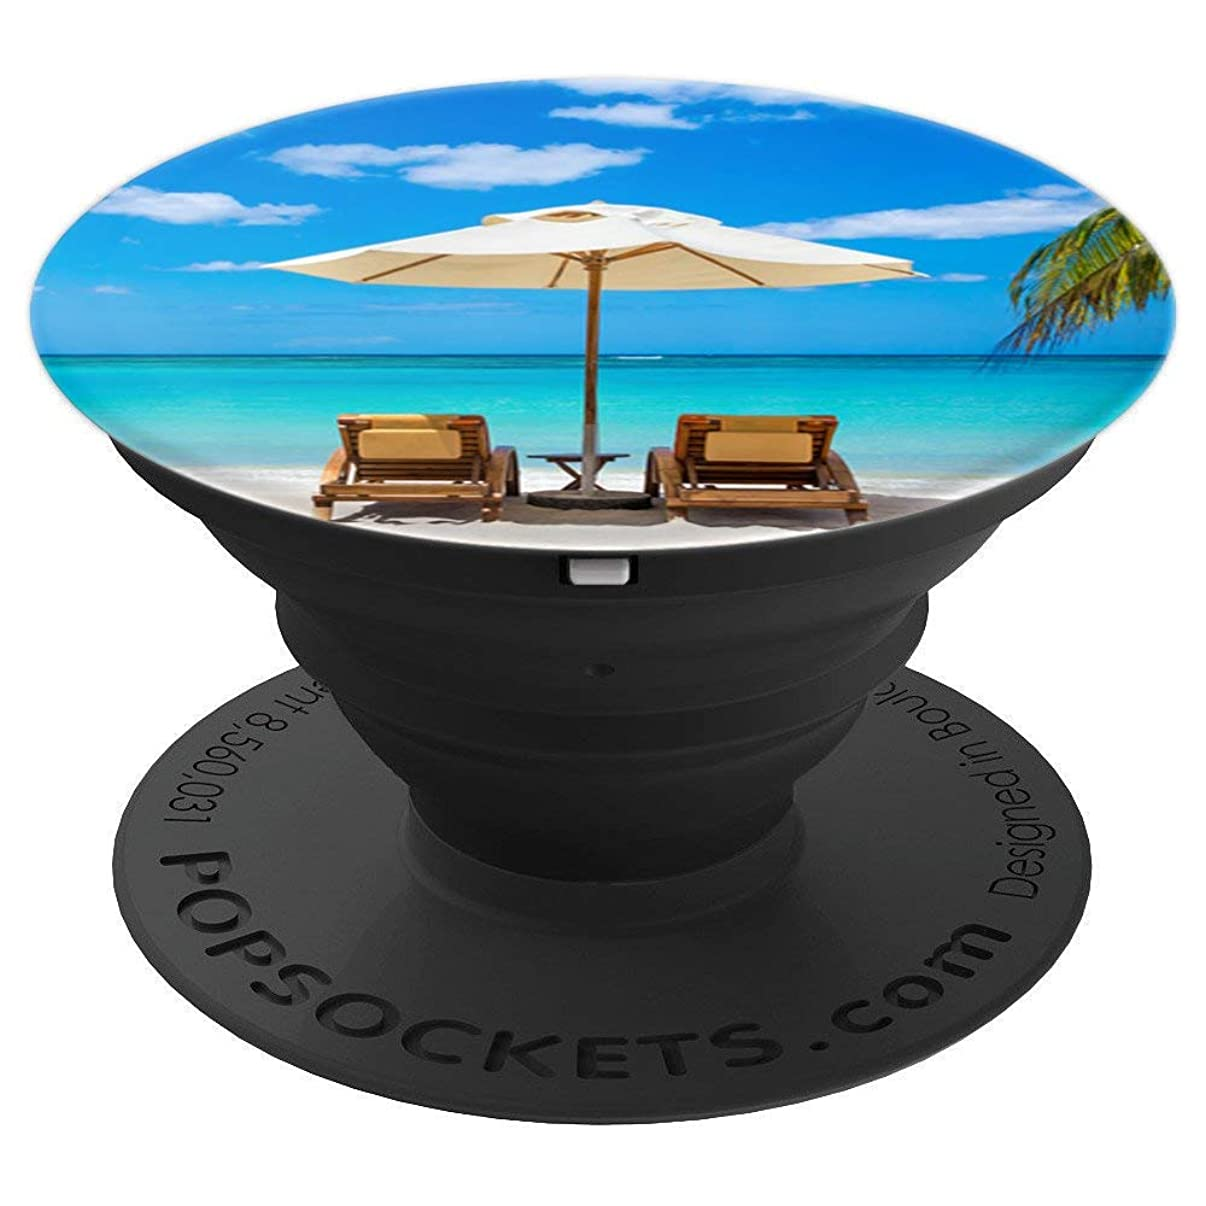 Tropical Beach Chairs Umbrella Romantic Vacation Hawaii Grip - PopSockets Grip and Stand for Phones and Tablets